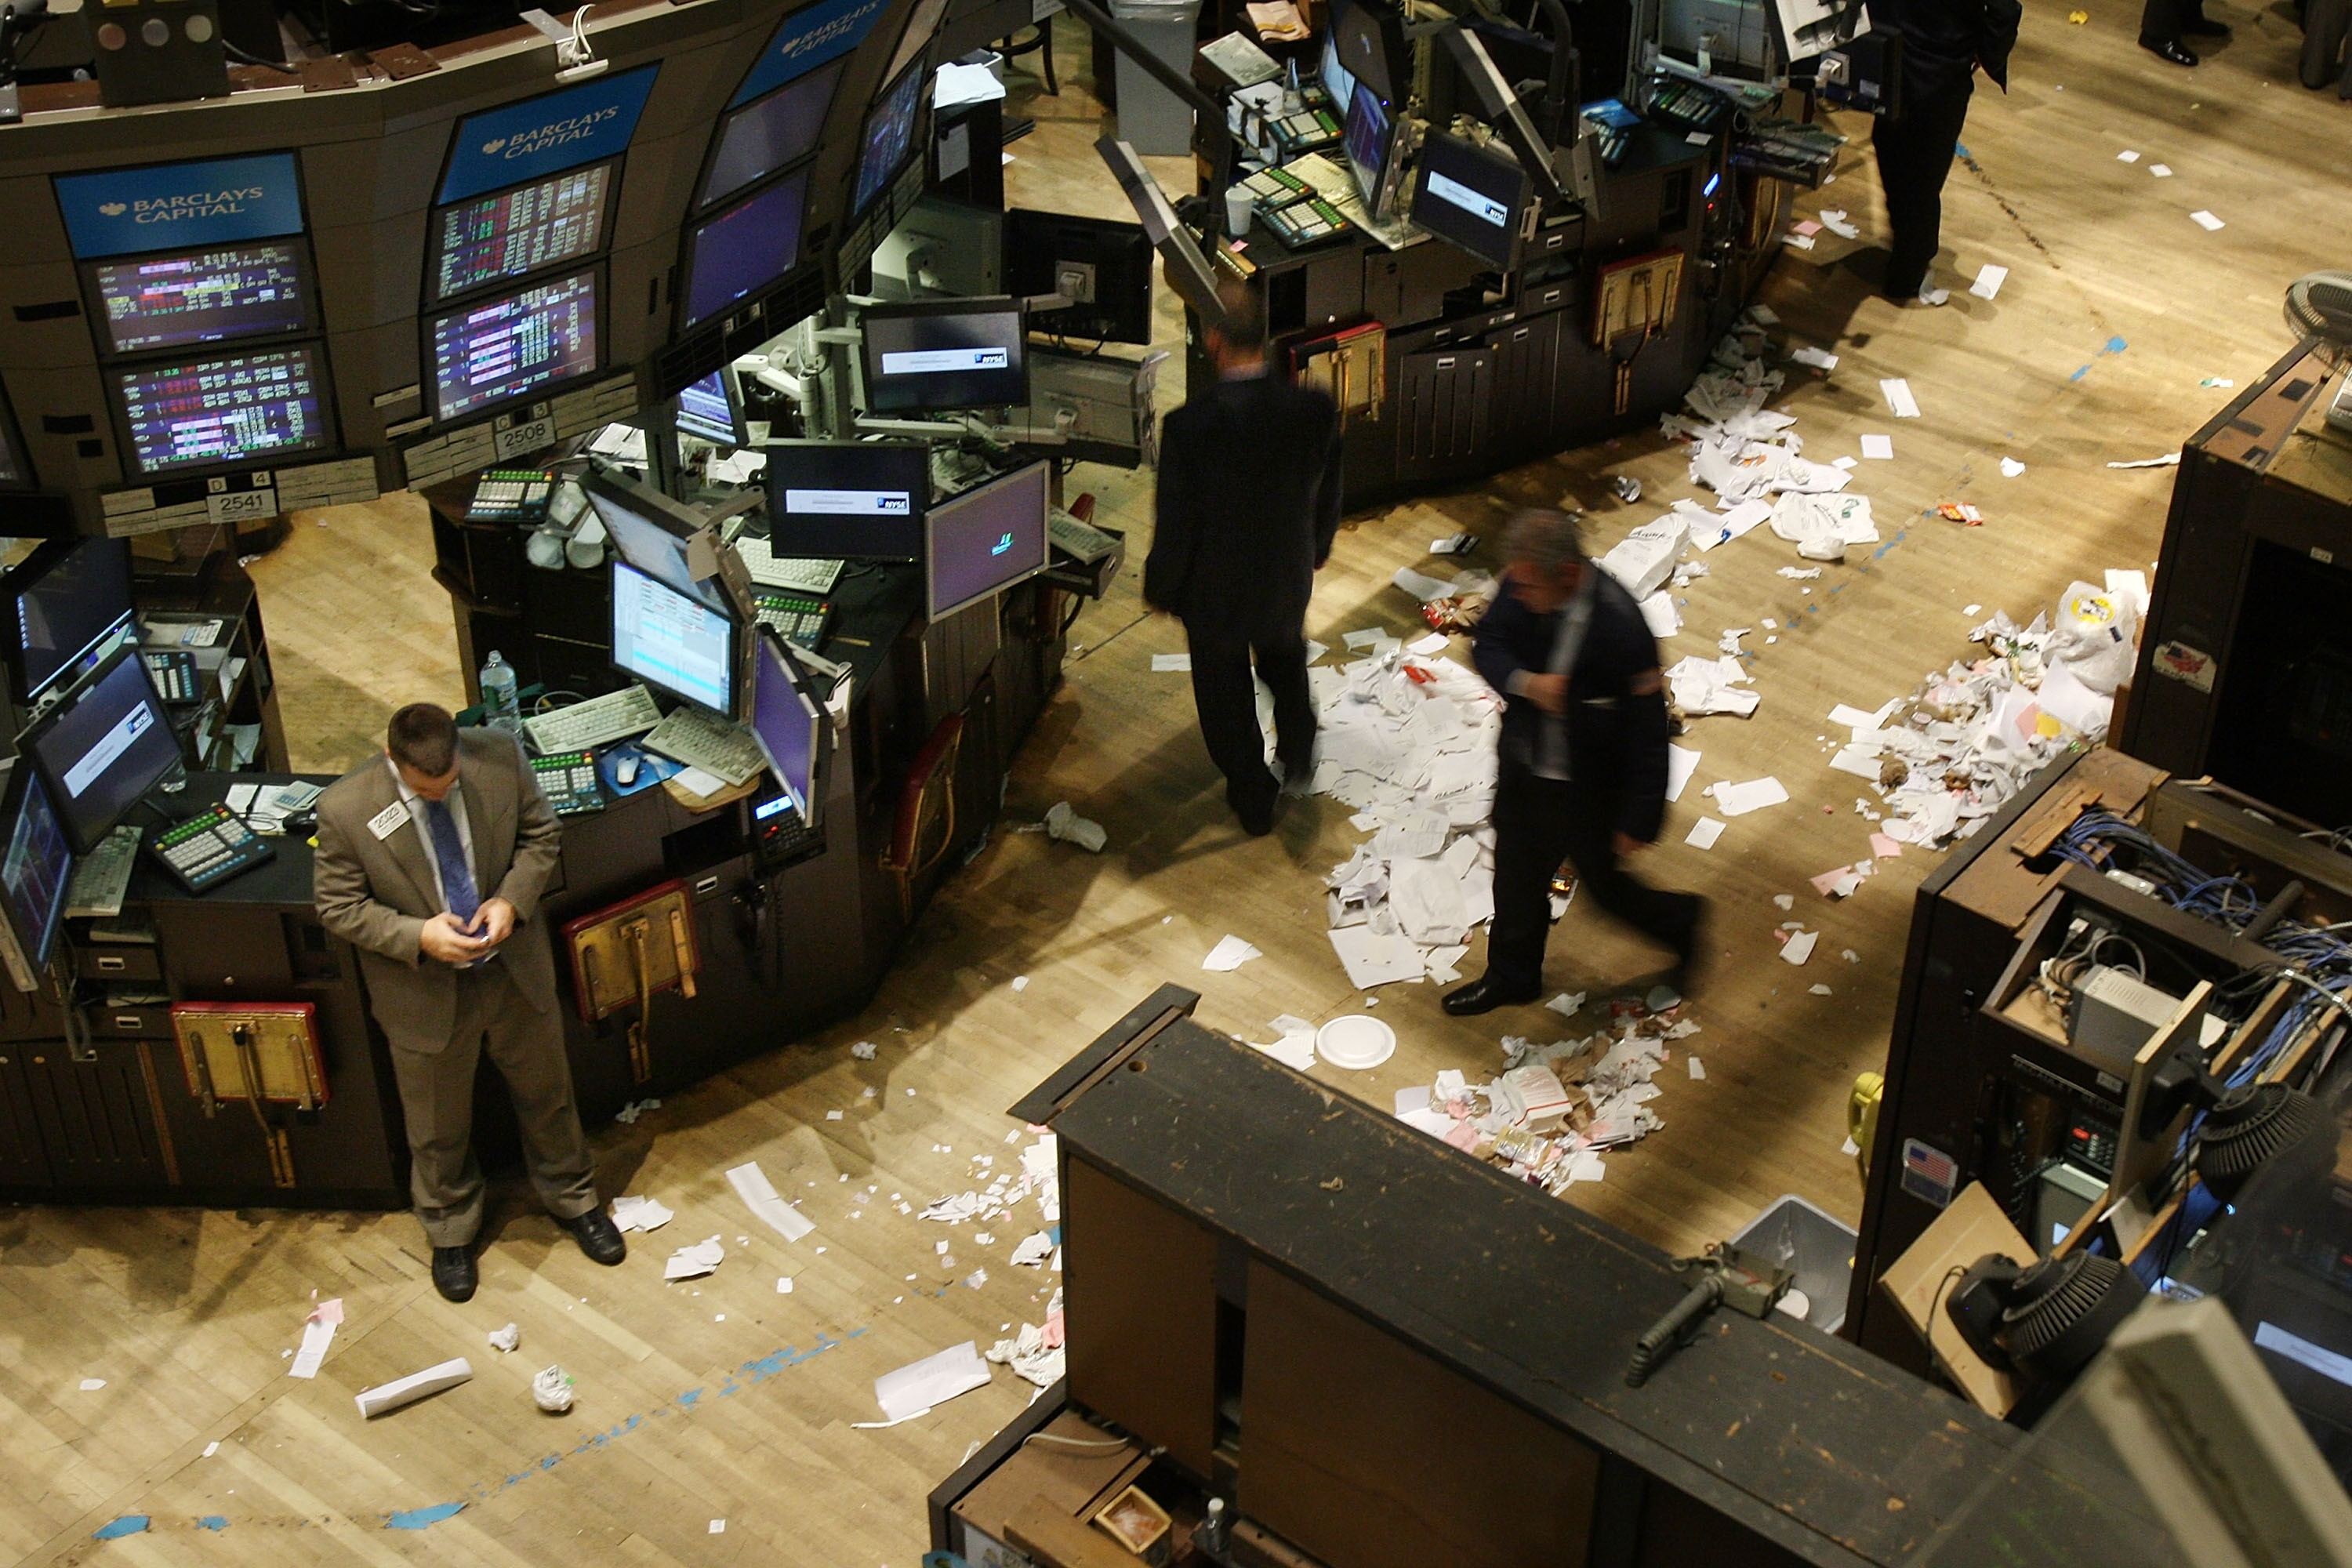 Traders on the floor of the New York Stock Exchange after the closing bell on 29 September 2008. A record 778 points were wiped off the Dow Jones that day, as the 2008 financial crisis pushed the world's banking system to the edge of collapse. (Photo by Spencer Platt/Getty Images)